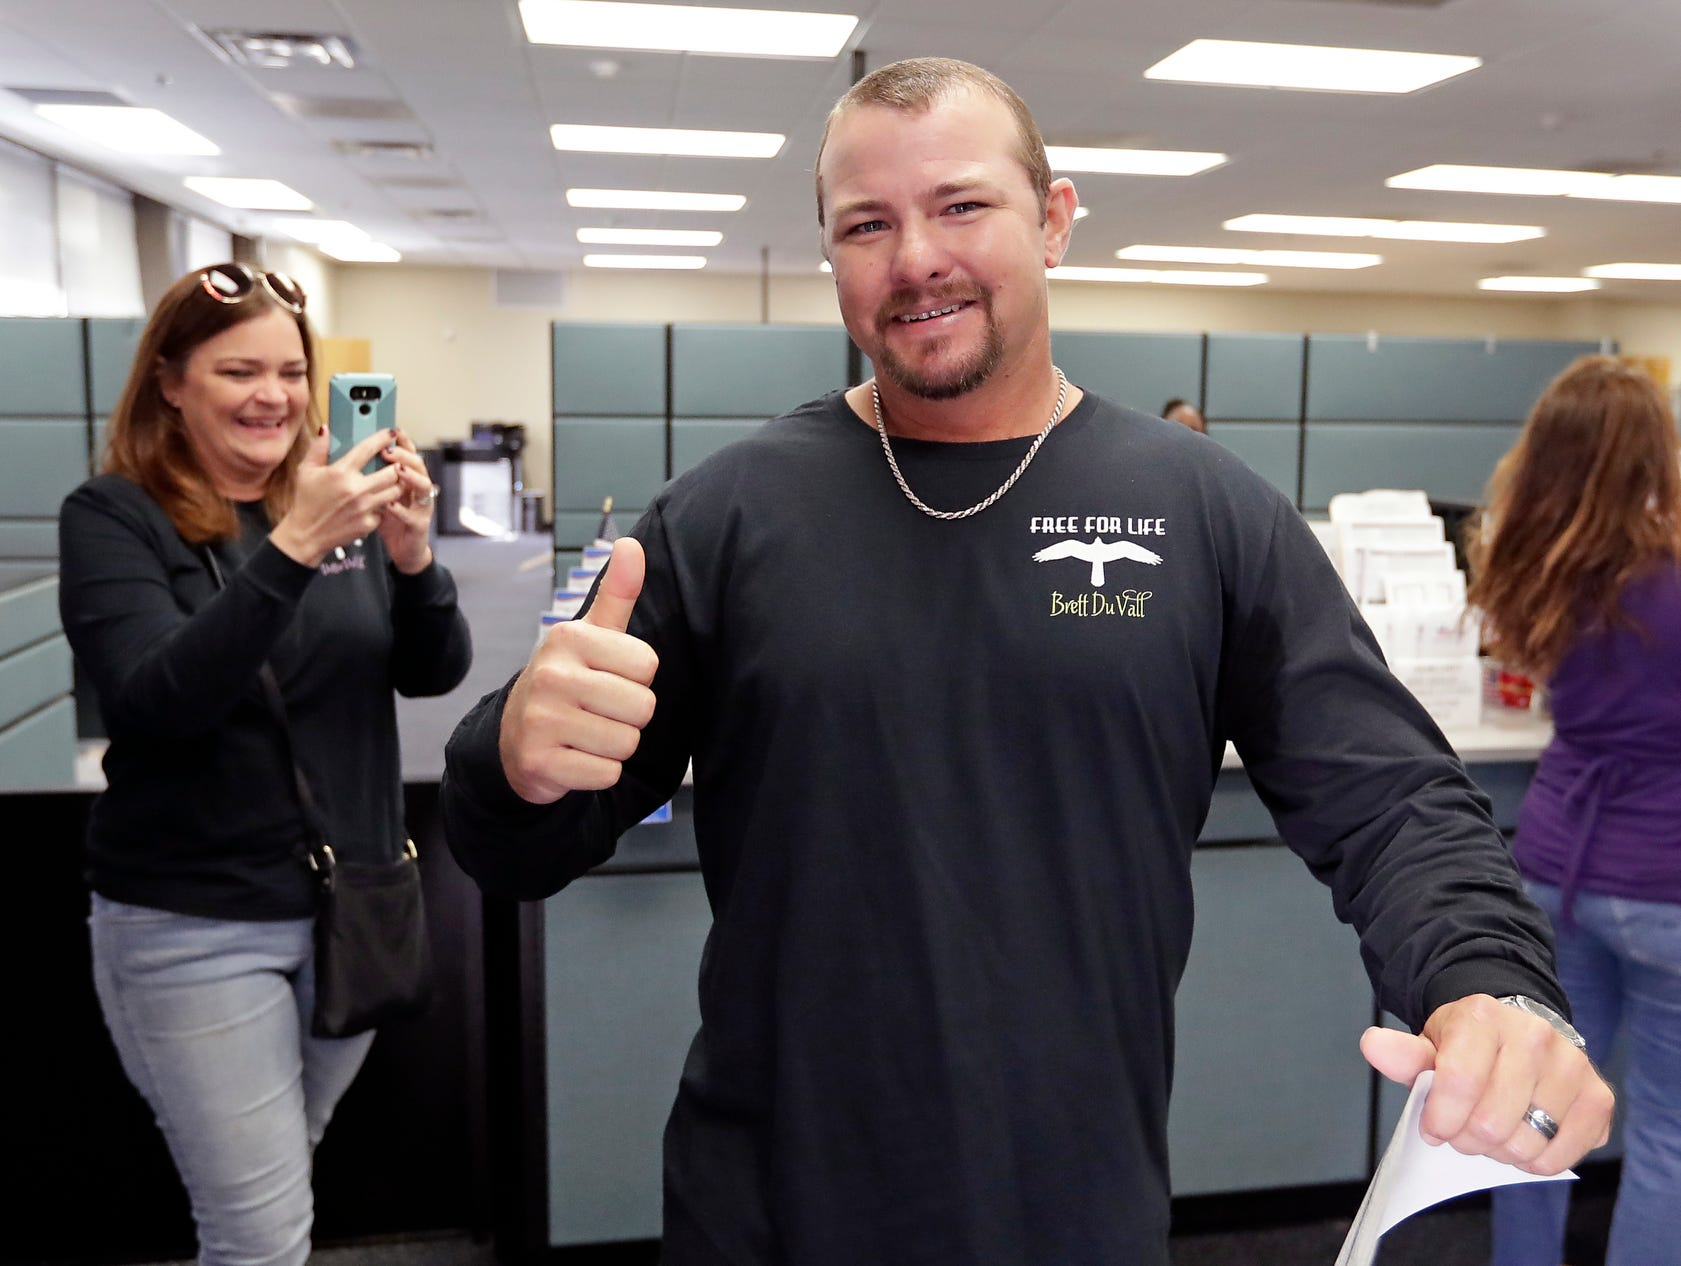 Former felon Brett DuVall gives a thumbs up as his wife Dottie takes a photo after he registered to vote at the Supervisor of Elections office Tuesday, in Orlando, Fla.